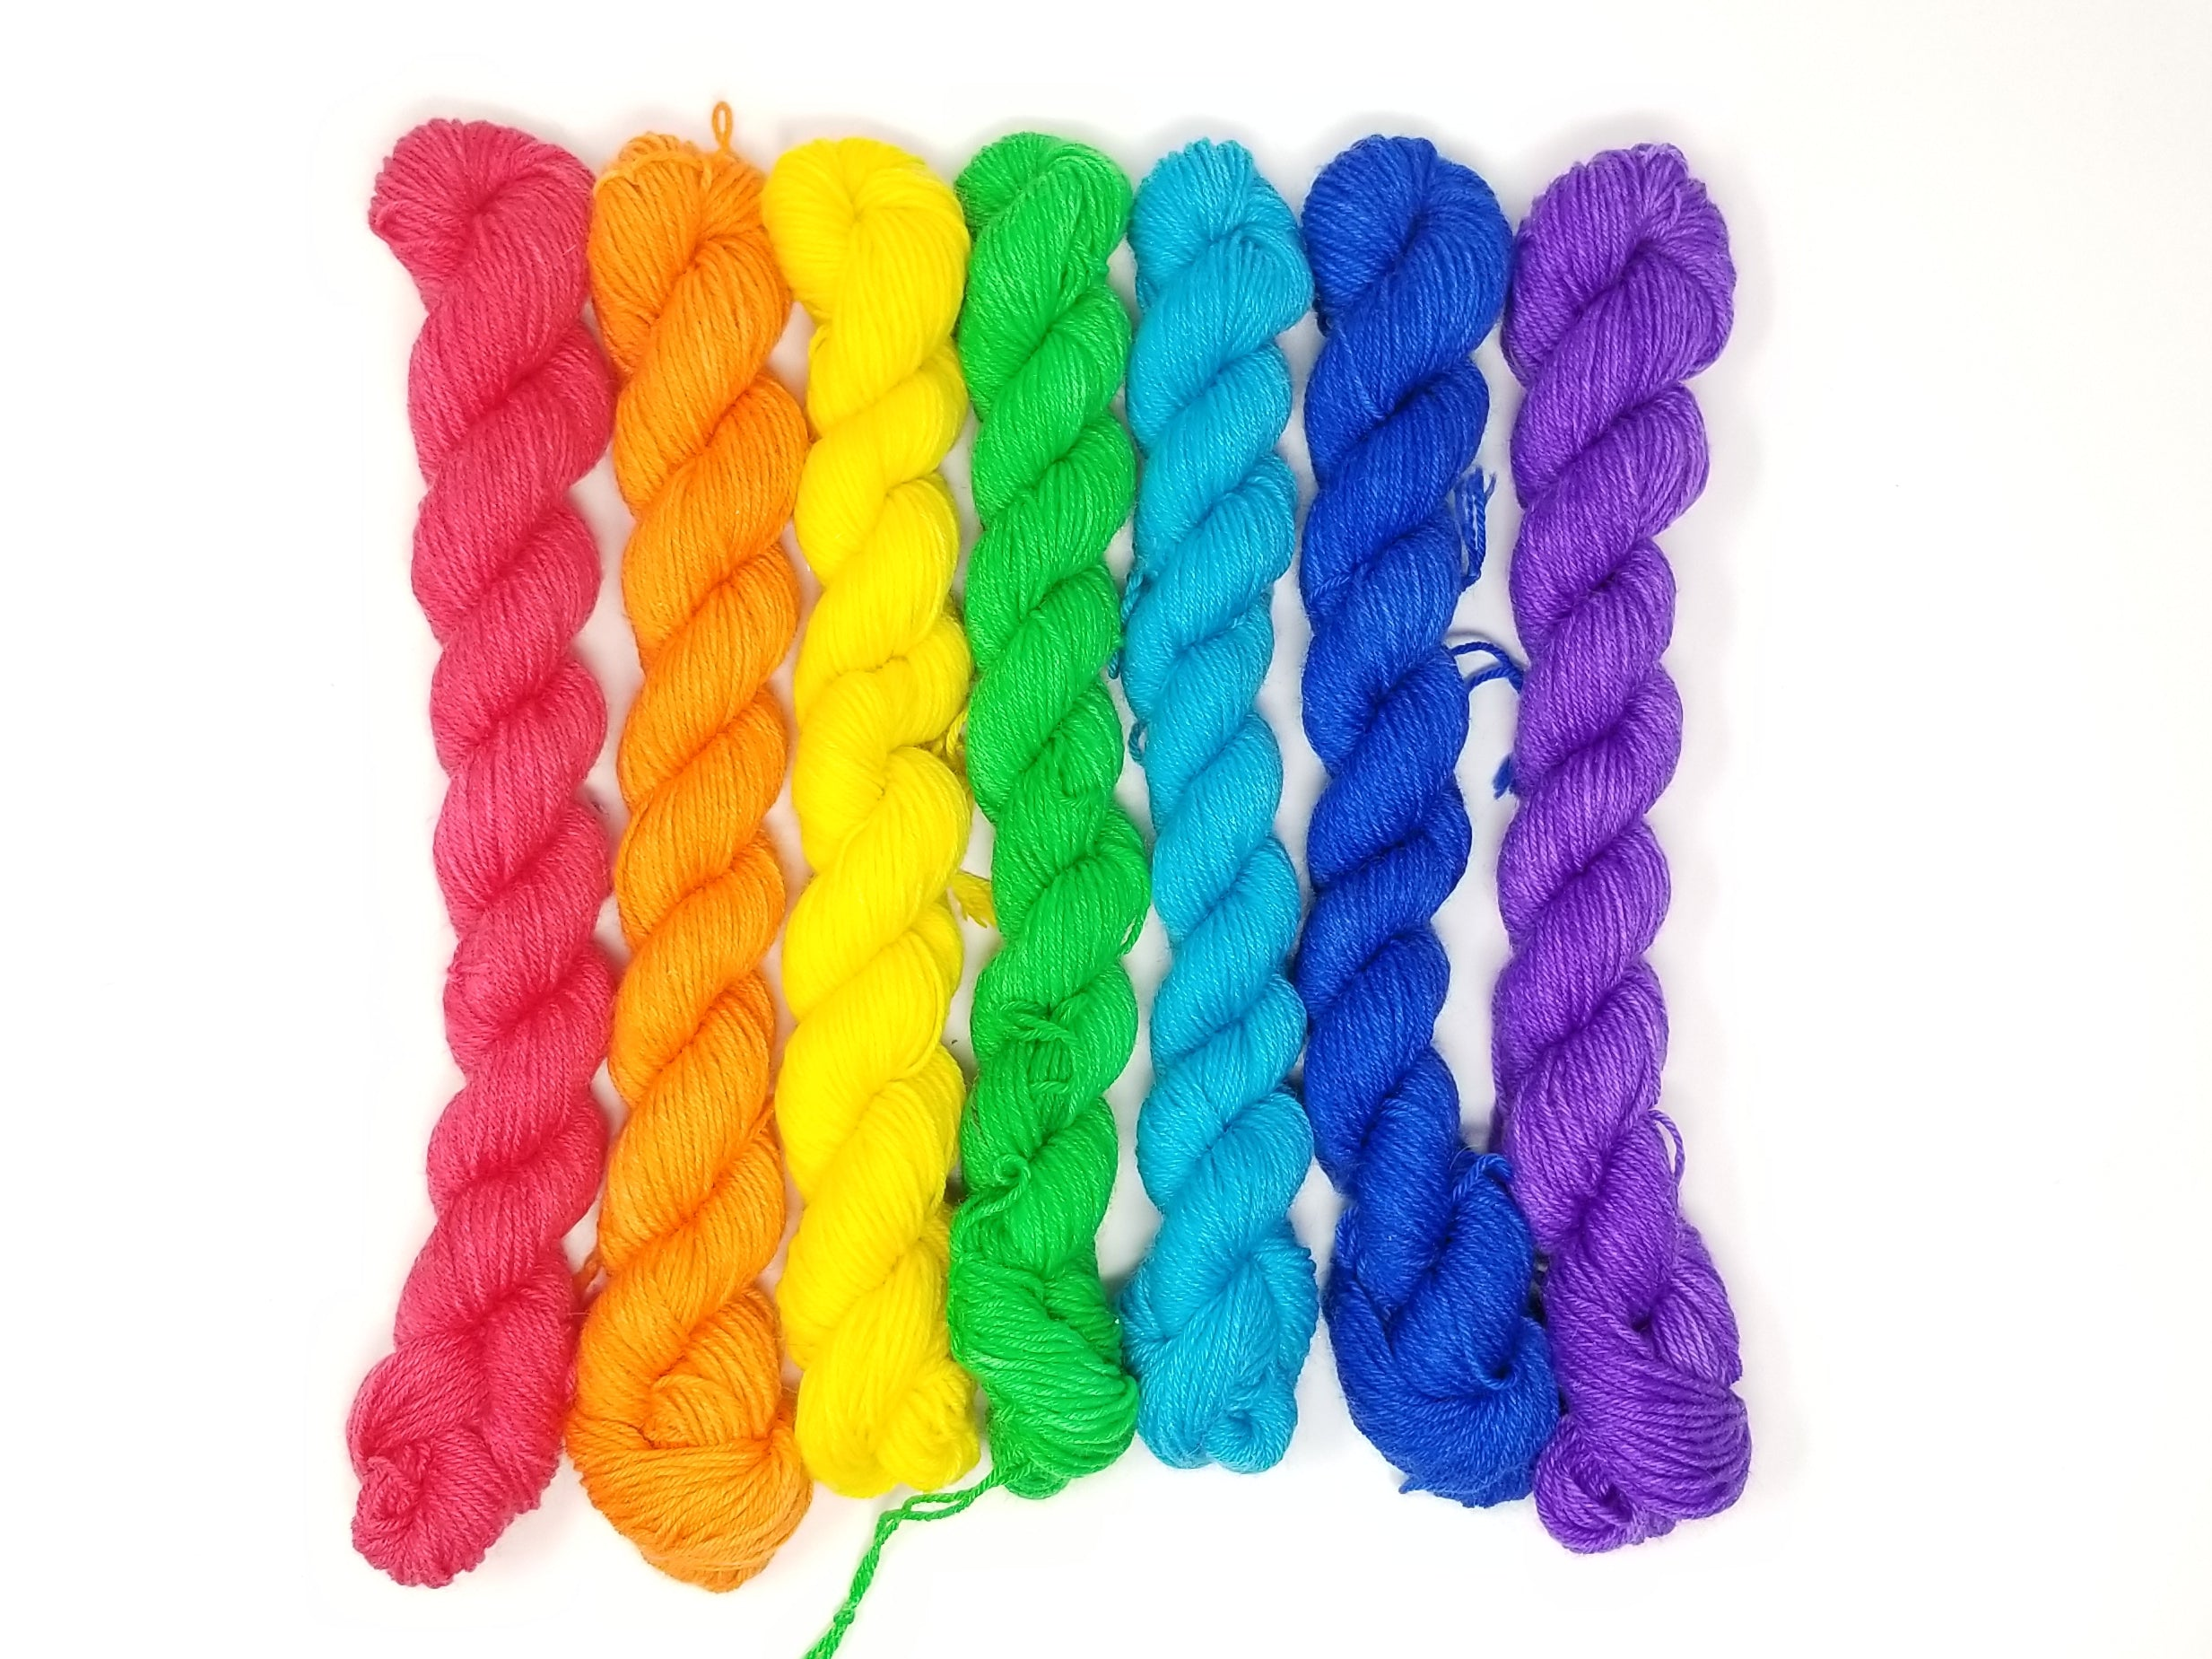 e91df8164bd Rainbow ROYGBIV mini set of 7 solid colored skeins - Hand dyed yarn - SW  Merino ...